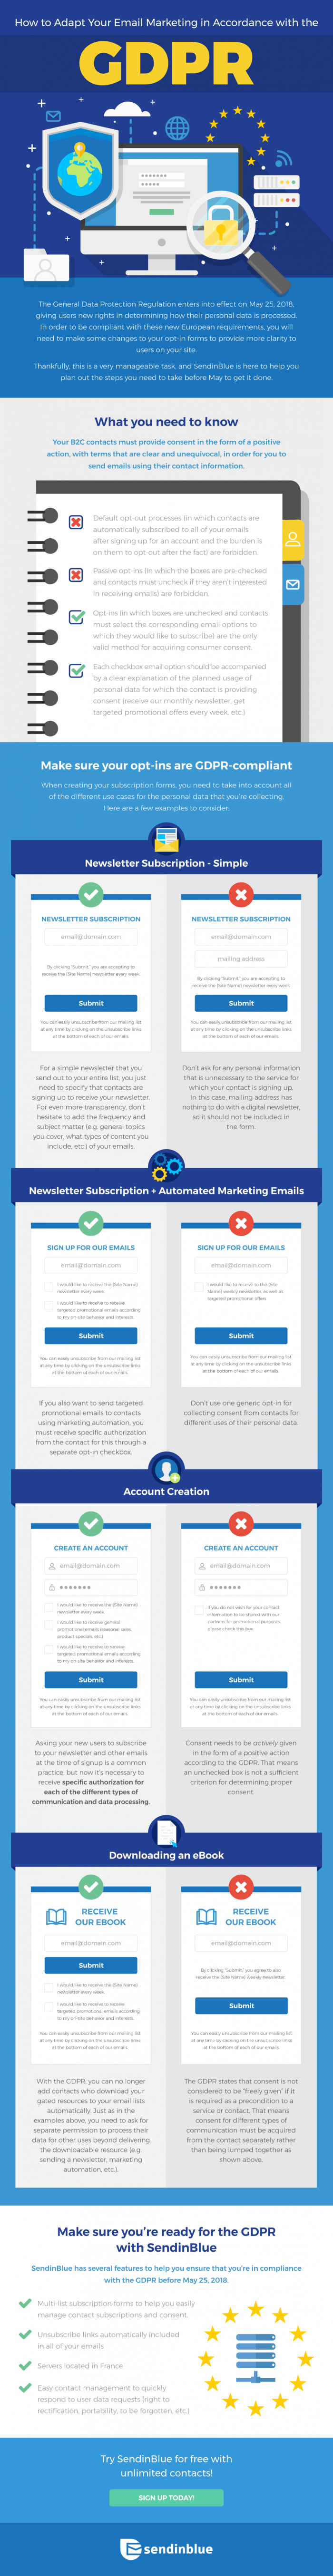 EU-compliant email marketing infographic